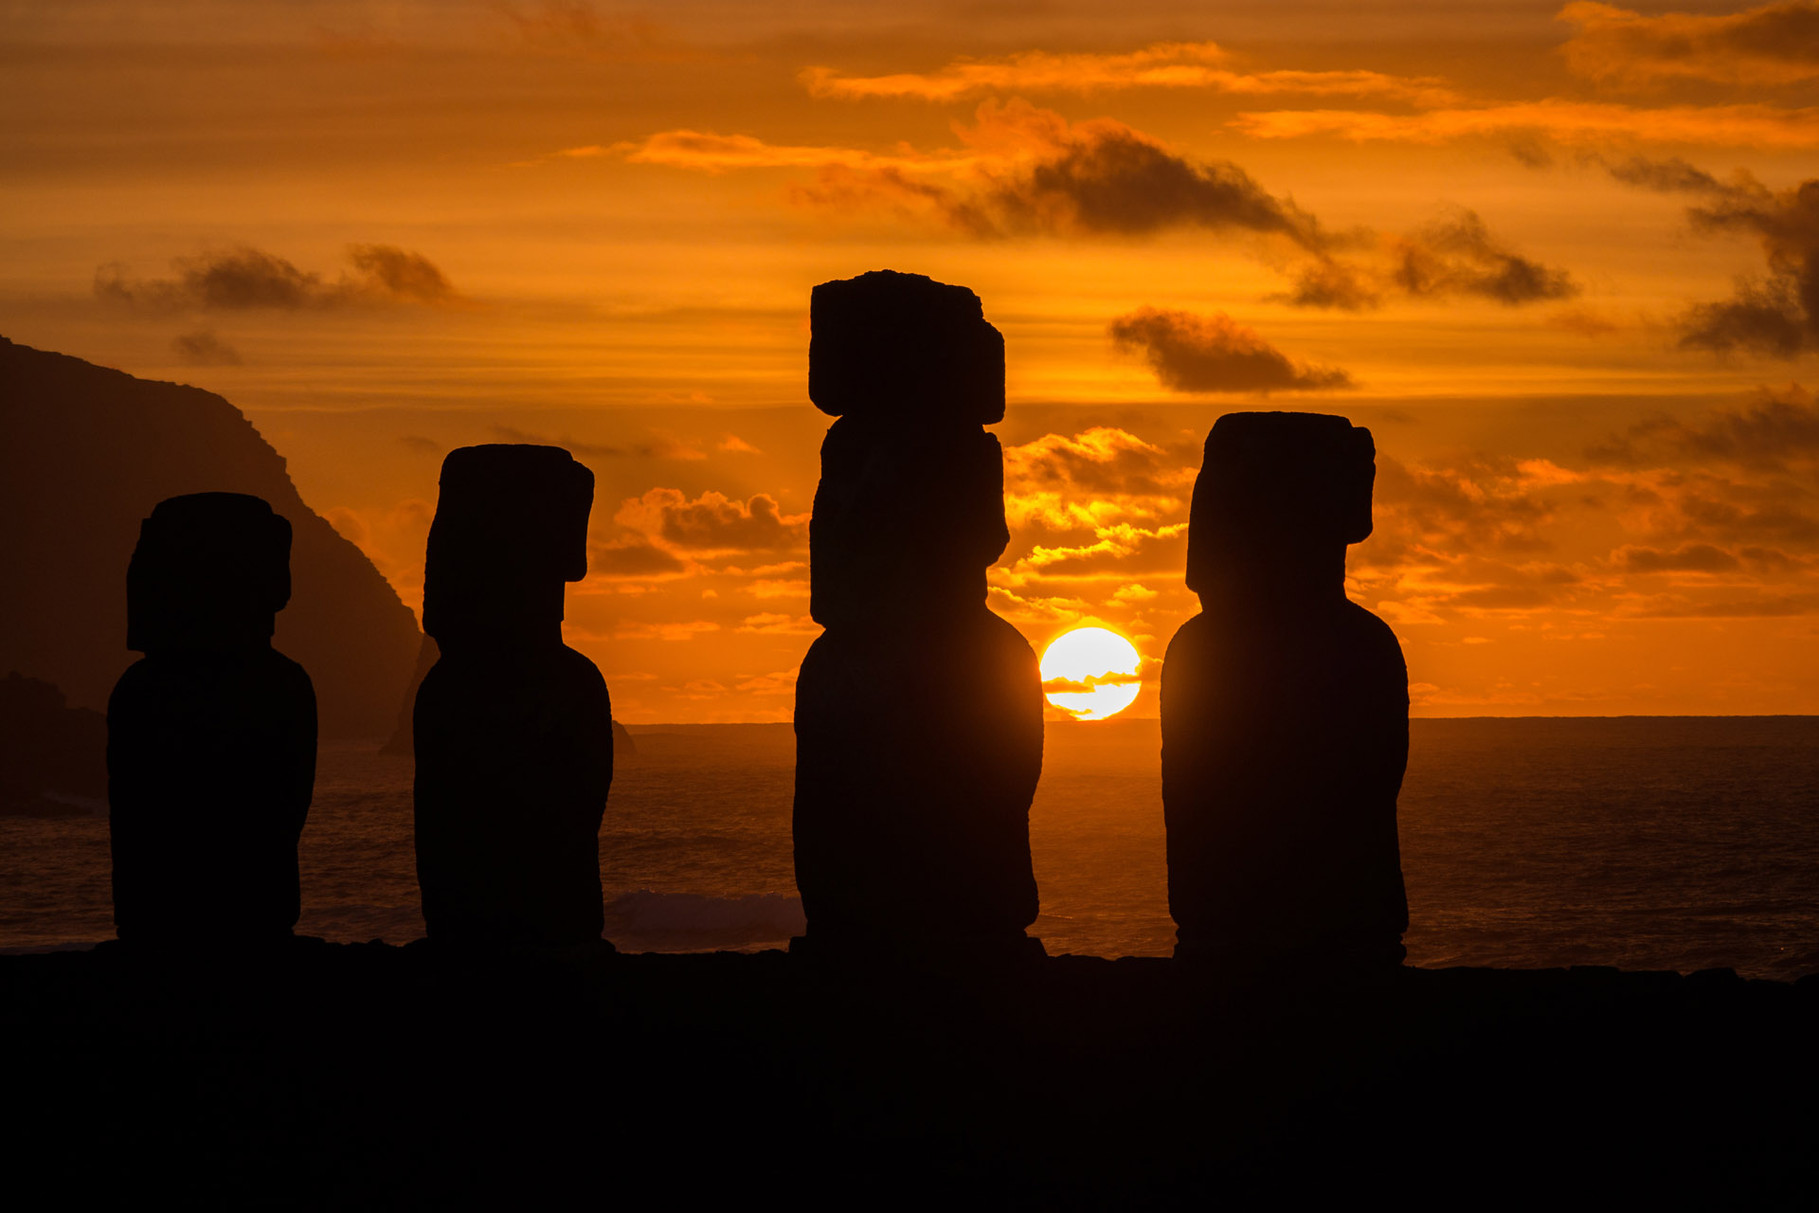 Sunrise at Tongariki, Easter island [Chile, 2014]